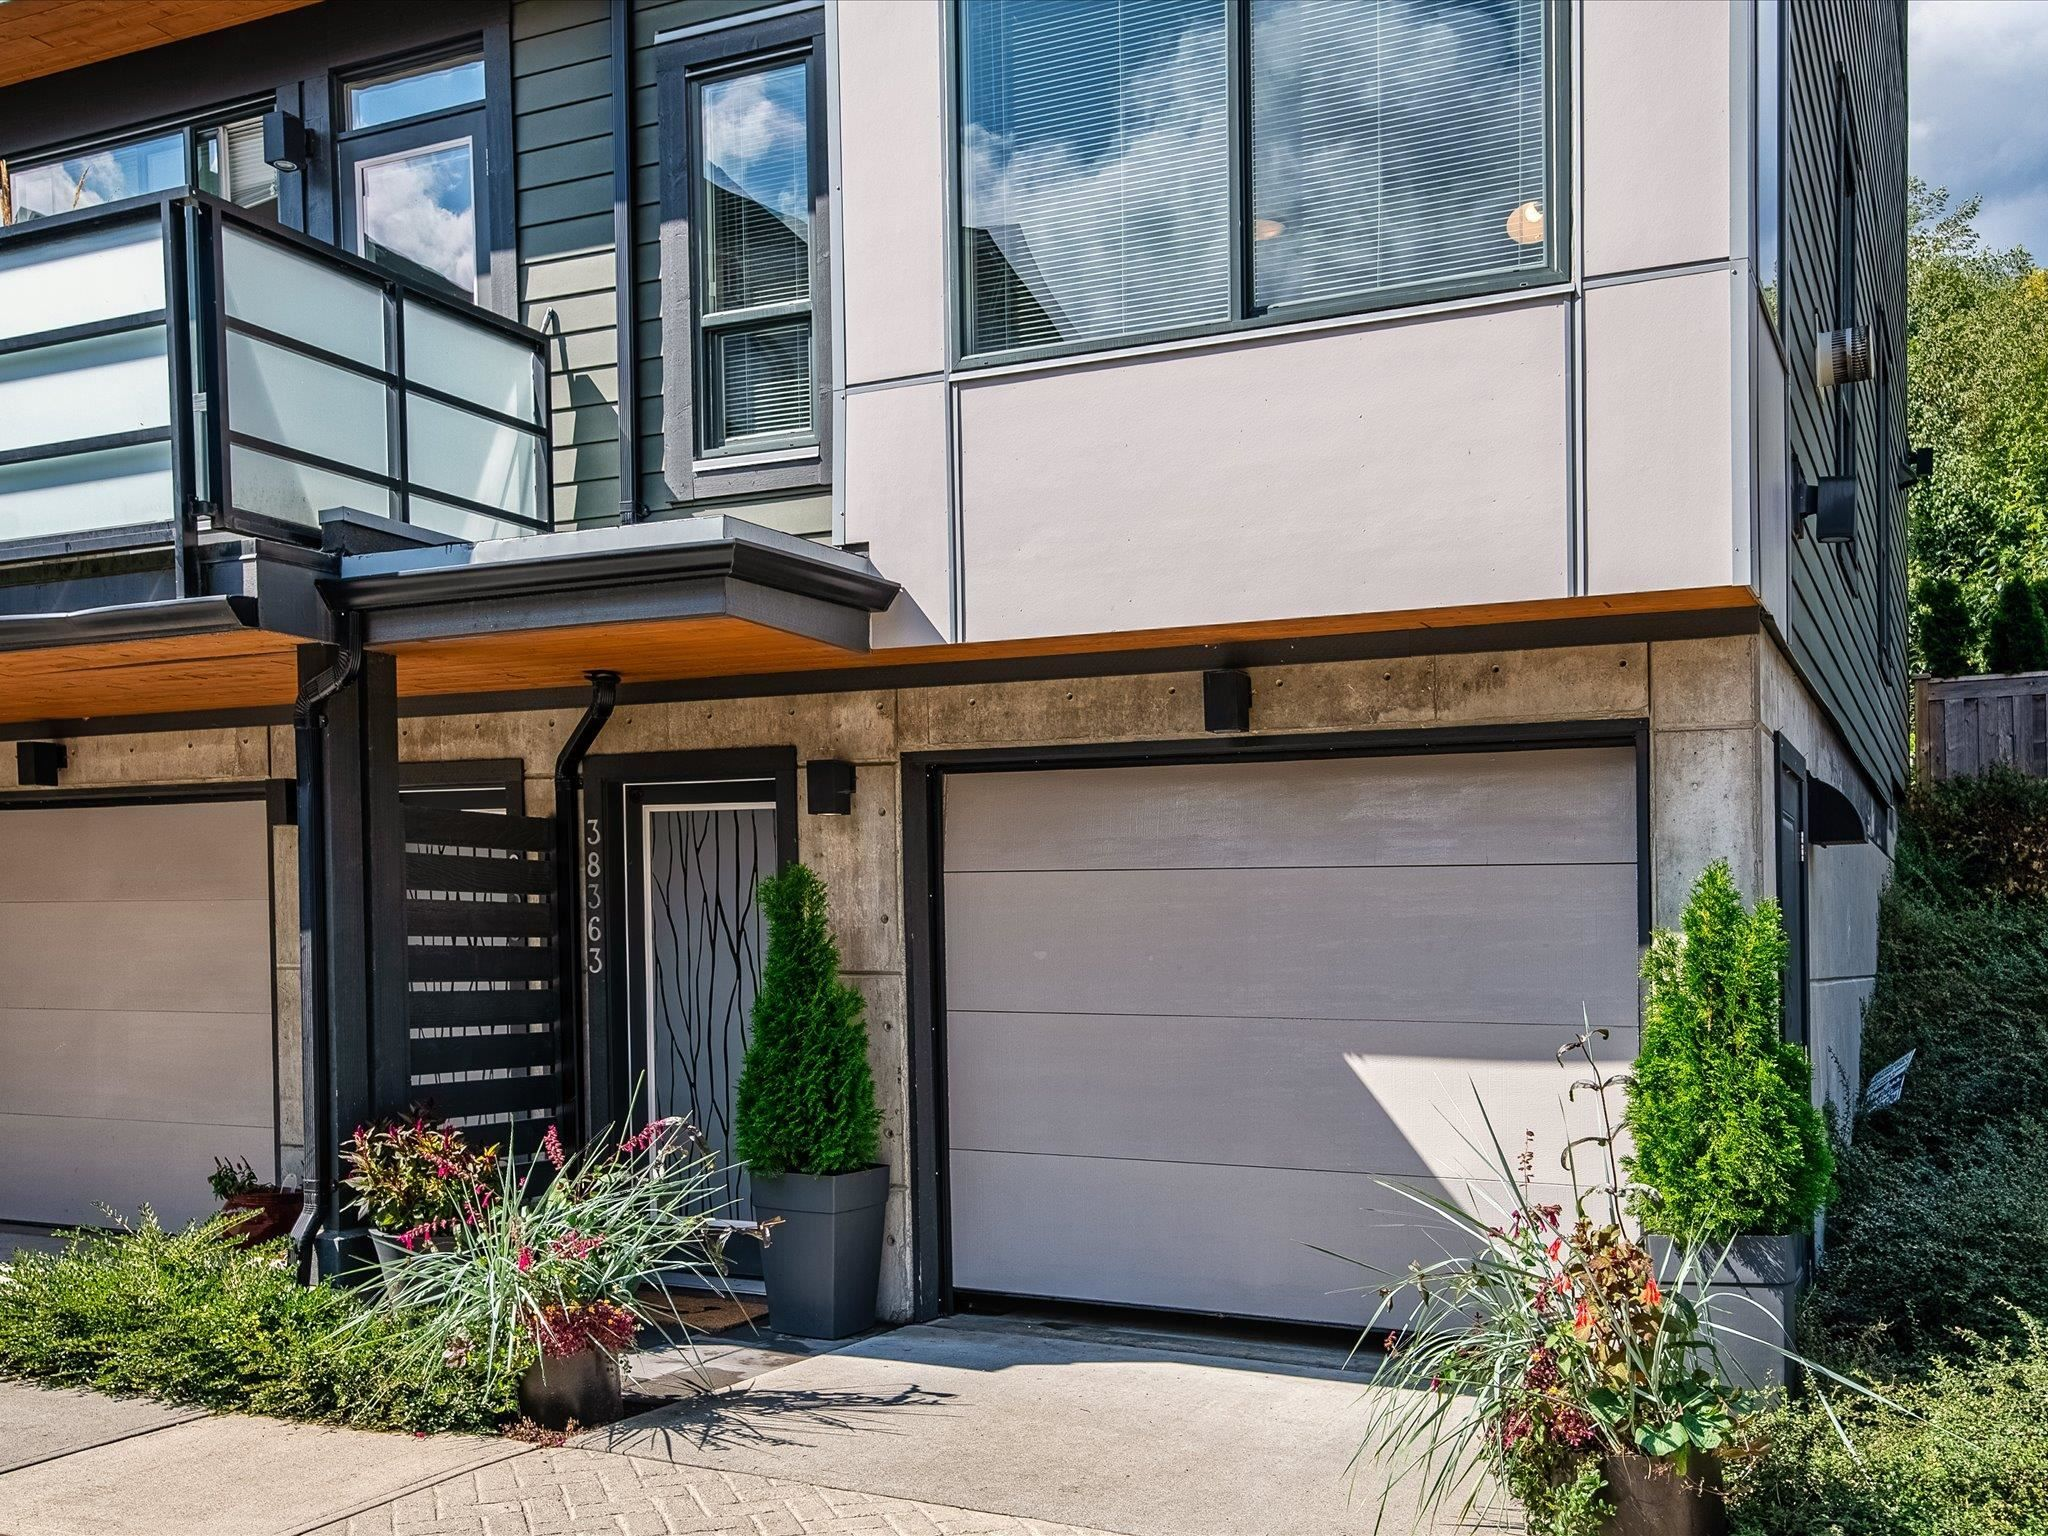 """Main Photo: 38363 SUMMITS VIEW Drive in Squamish: Downtown SQ Townhouse for sale in """"EAGLE WIND AT NATURES GATE"""" : MLS®# R2618293"""